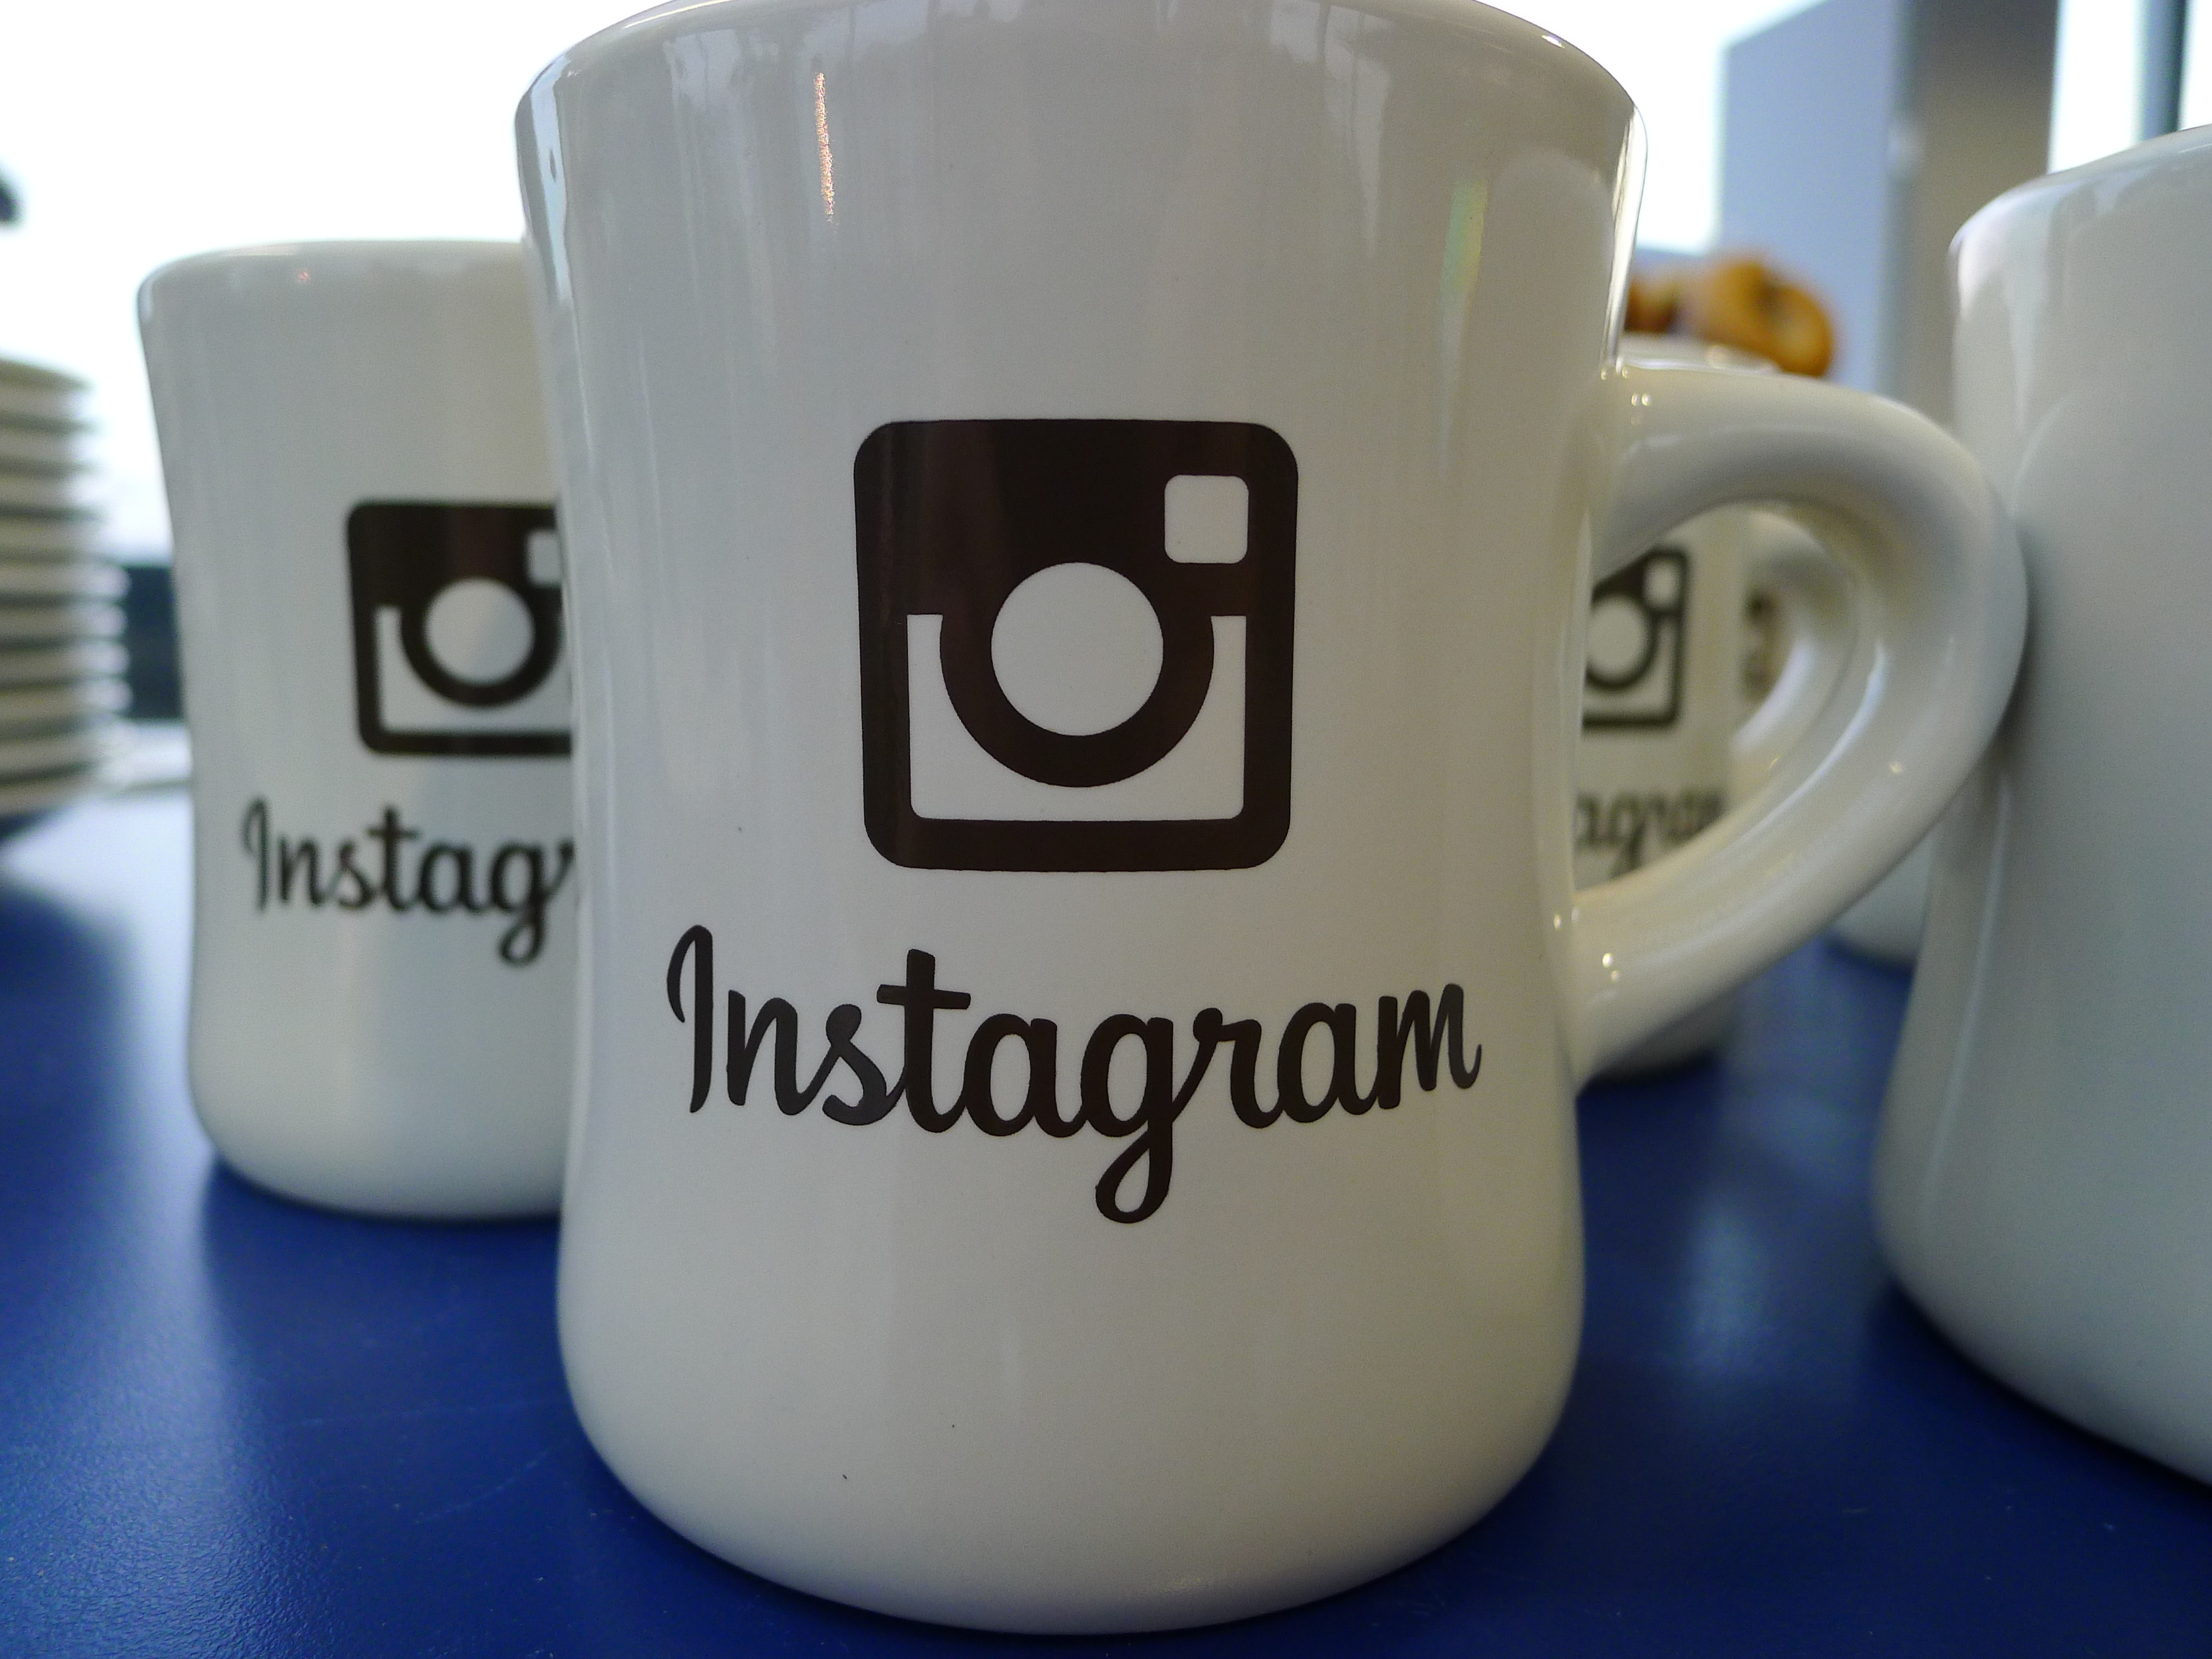 Instagram launches Instagram Direct, lets you share photos and videos privately with friends